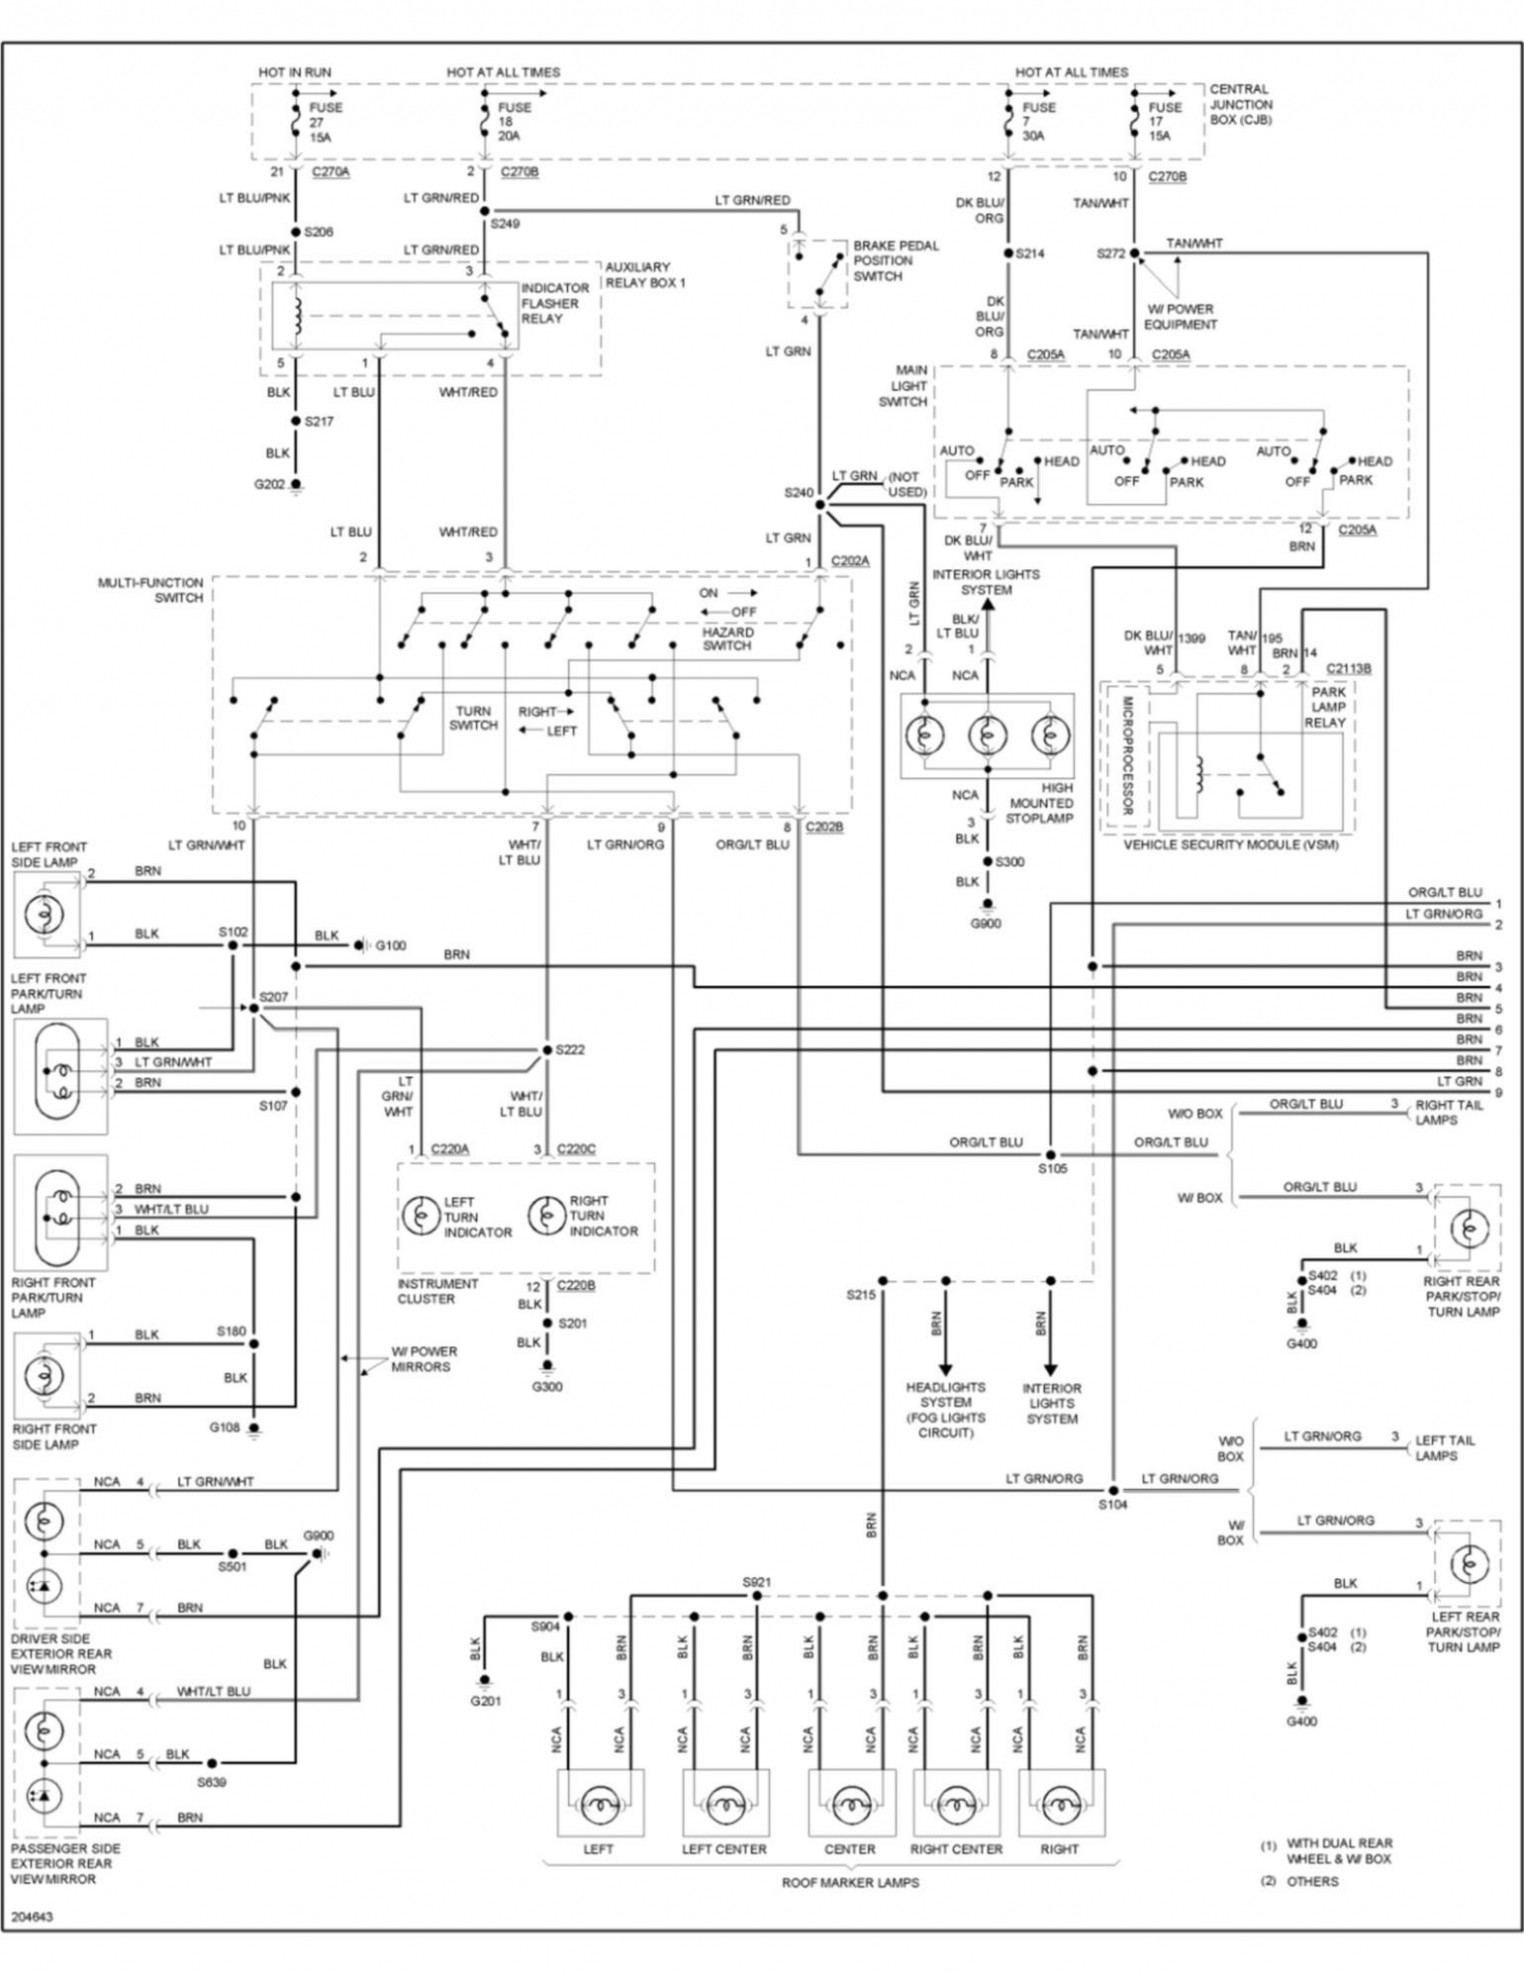 tail light wiring diagram 1999 ford f550 wire center e280a2 2005 ford f350 fuse box diagram